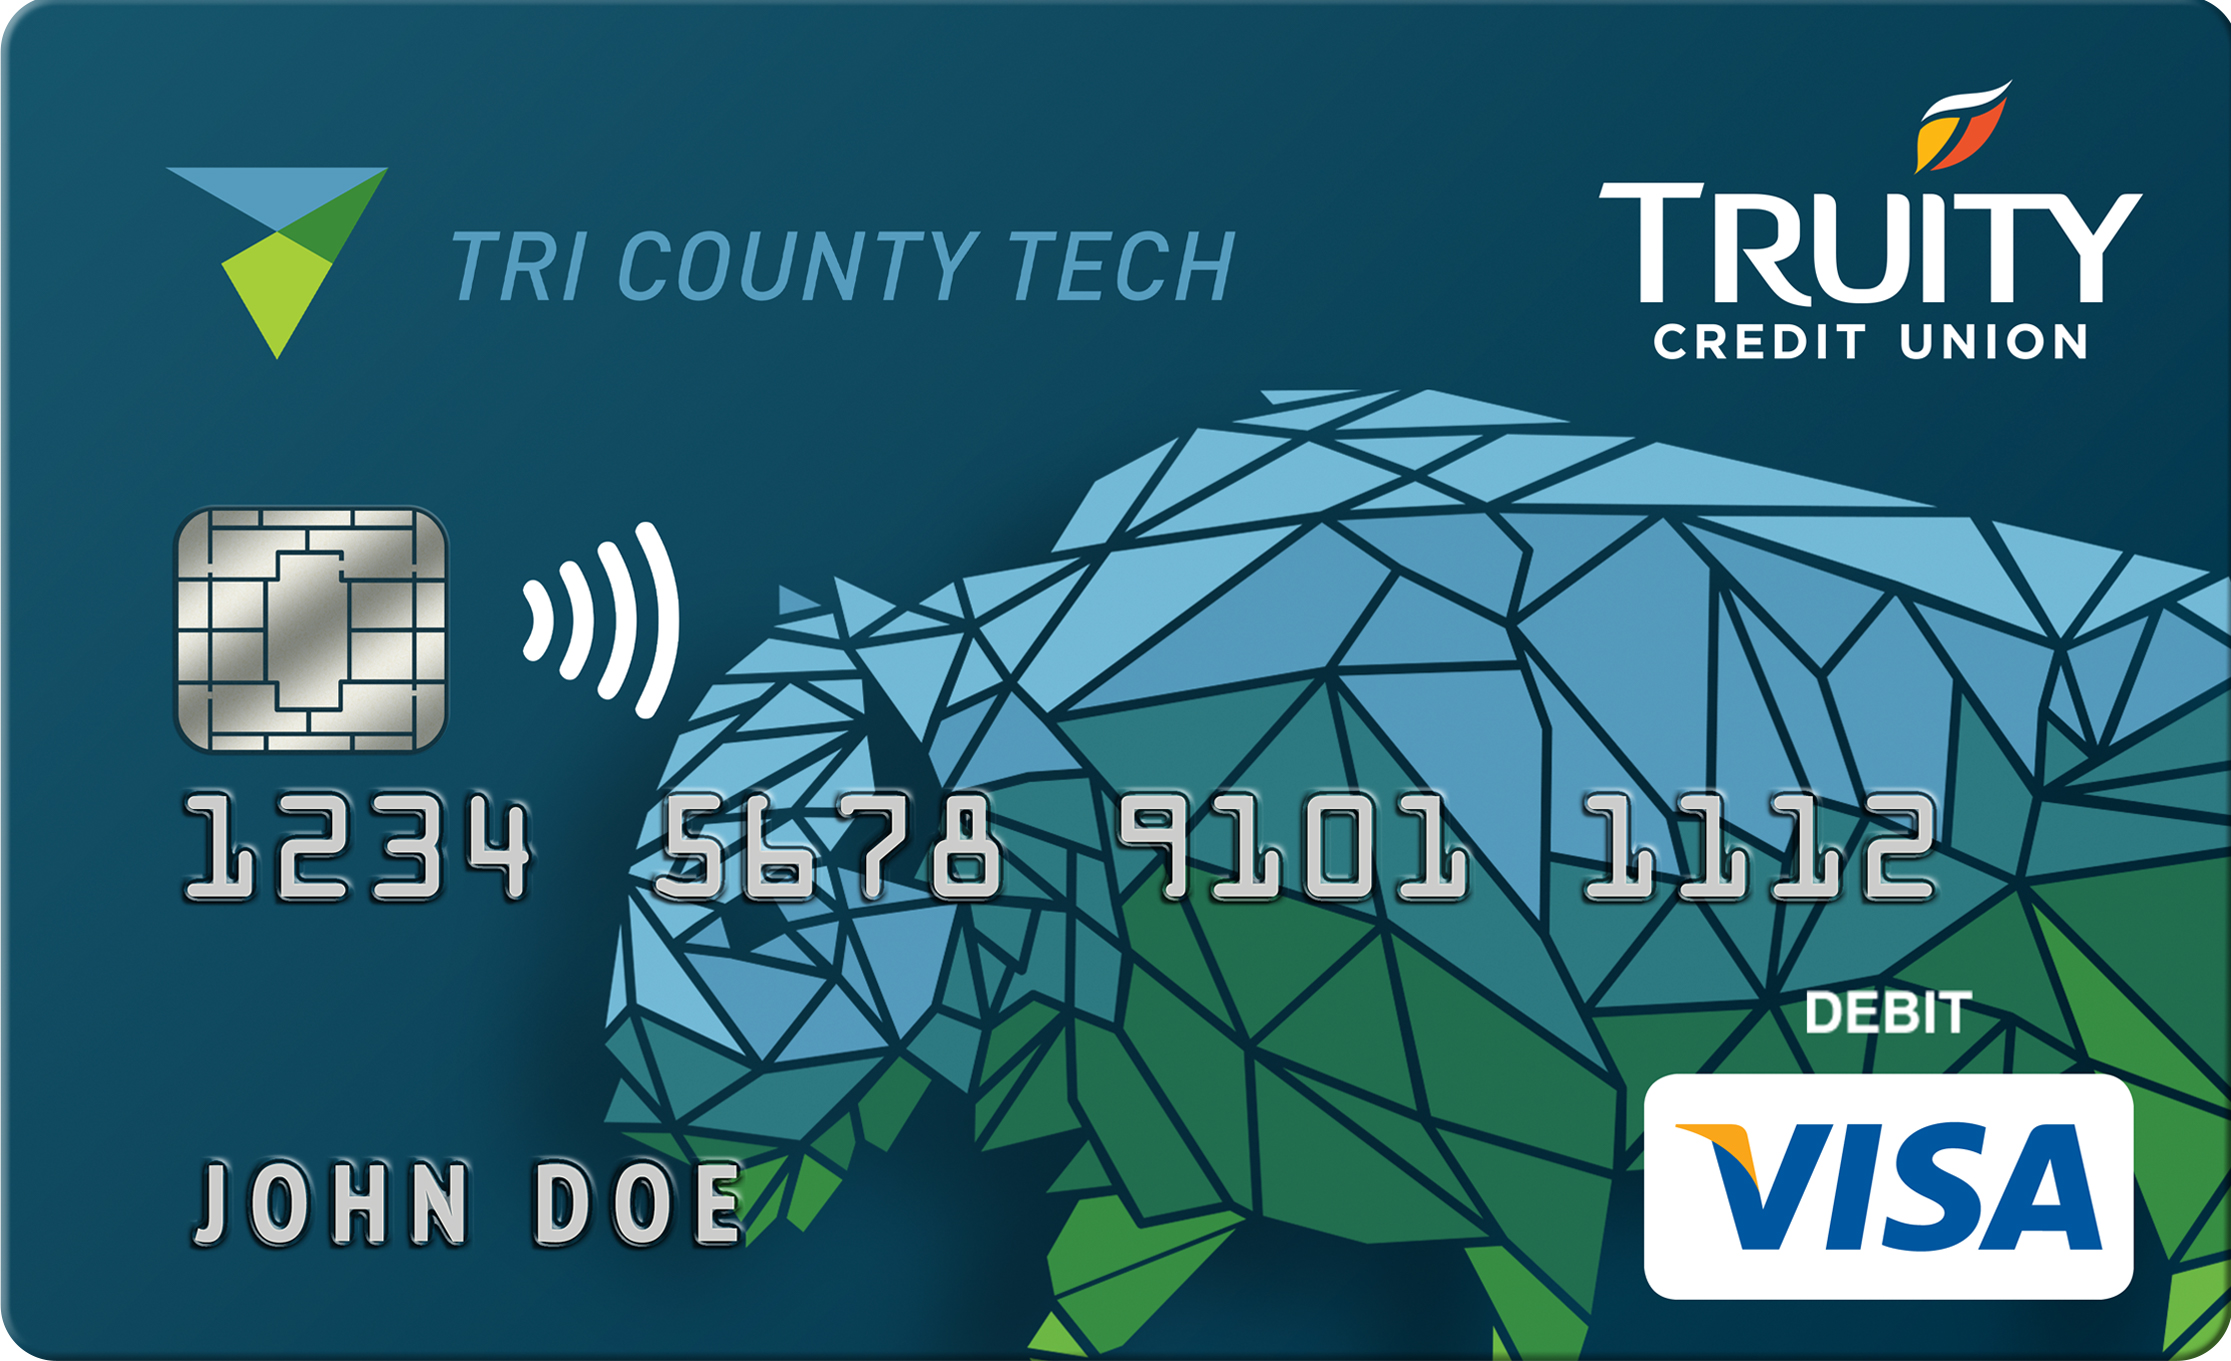 Tri County Tech Card